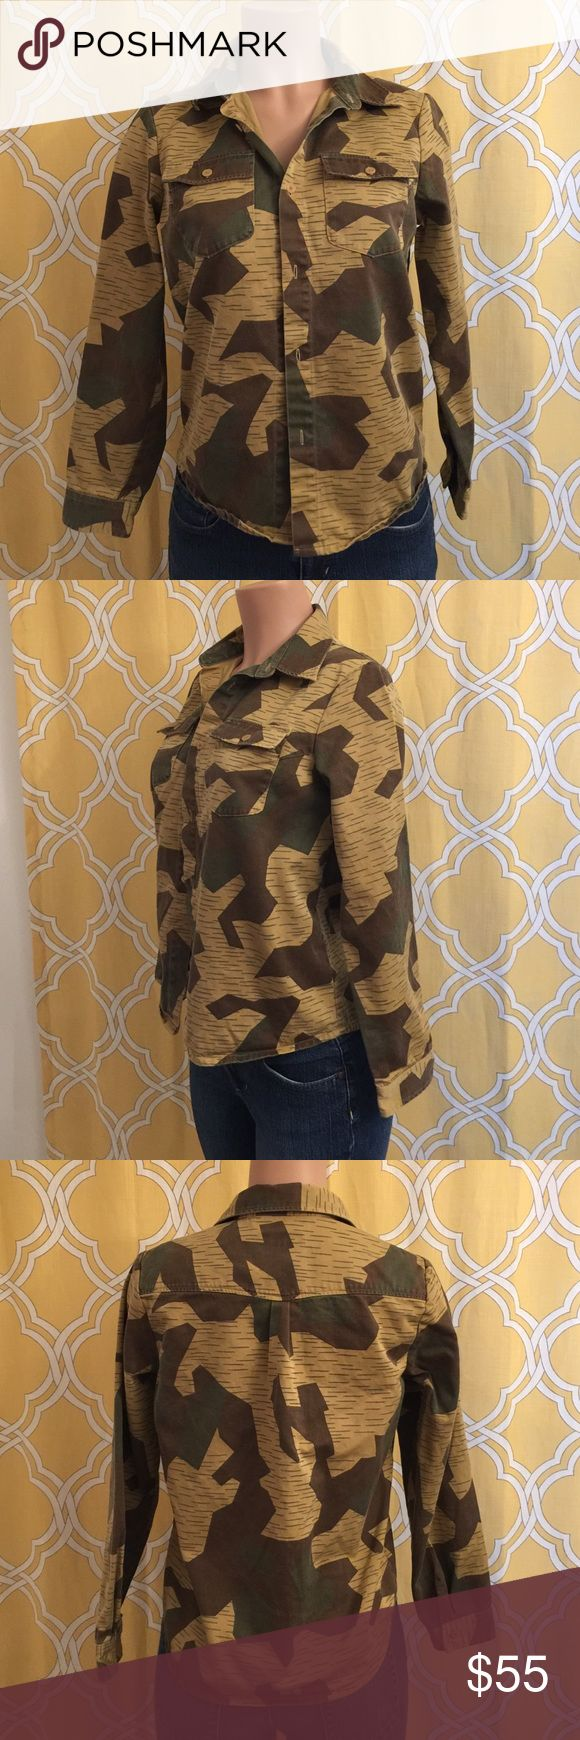 A.P.C button down camouflage shirt size m In excellent condition just missing one button A.P.C. Tops Button Down Shirts